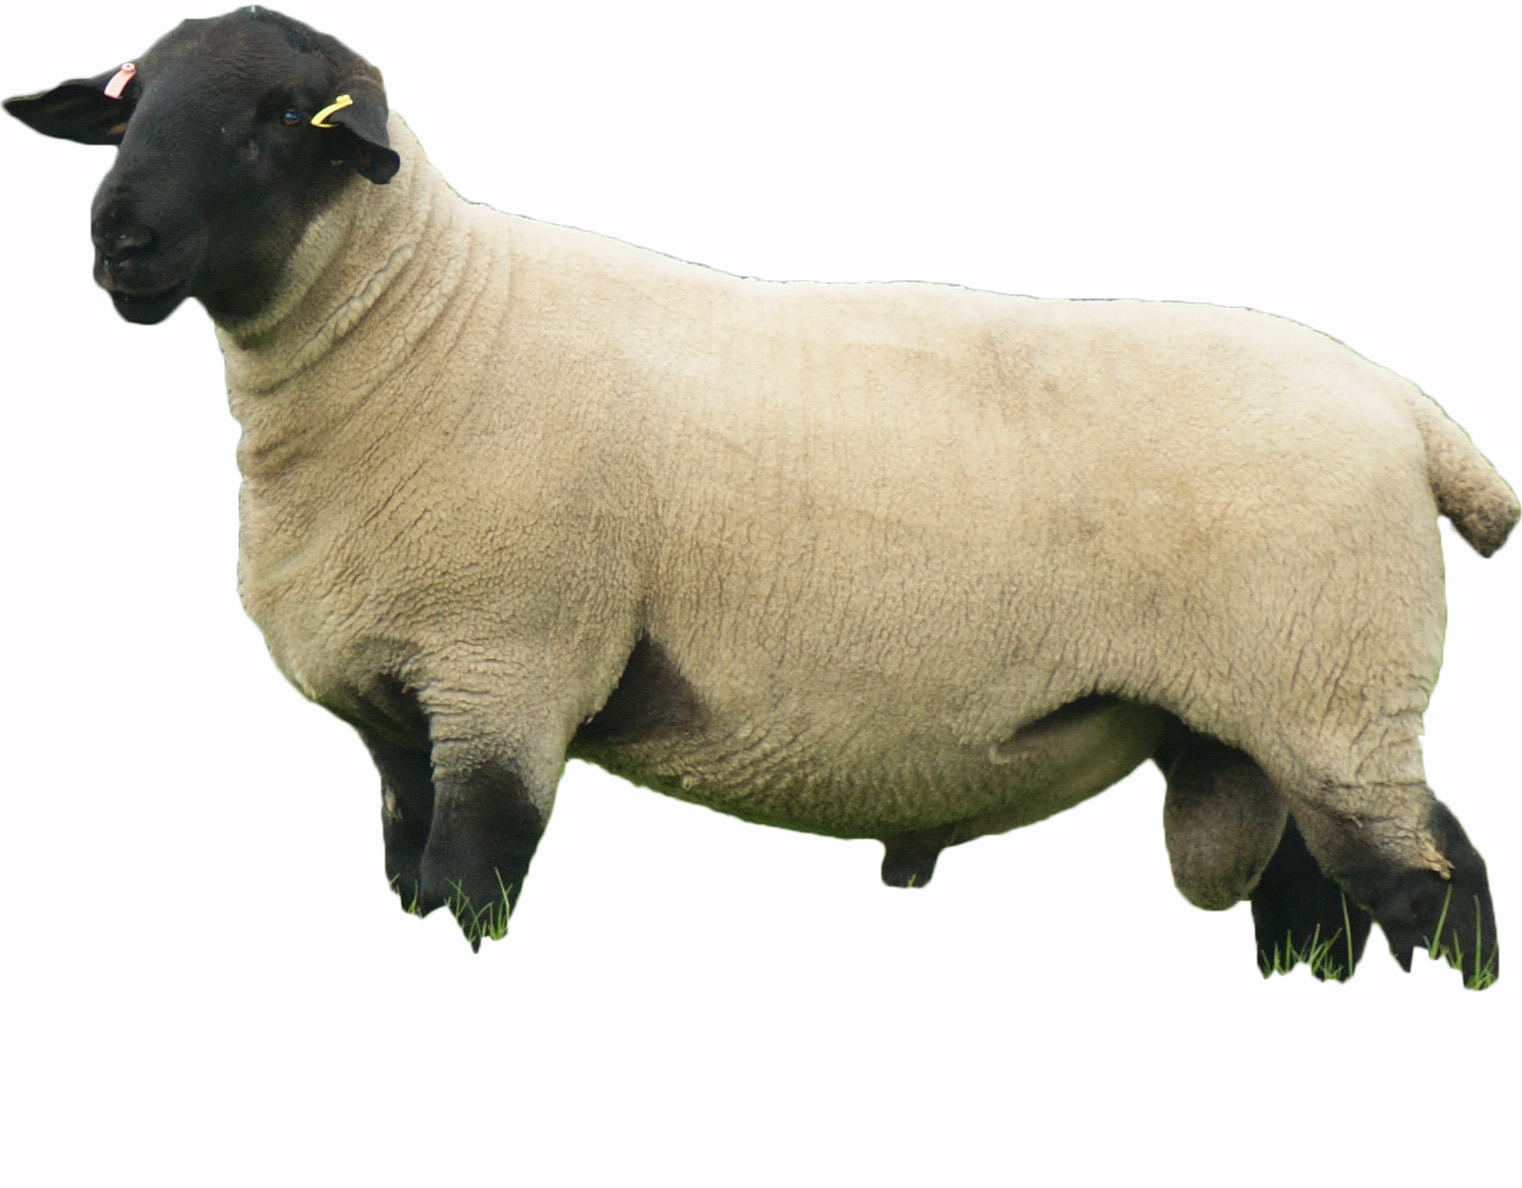 Pedigree Suffolk Sheep | Logie Durno Sheep